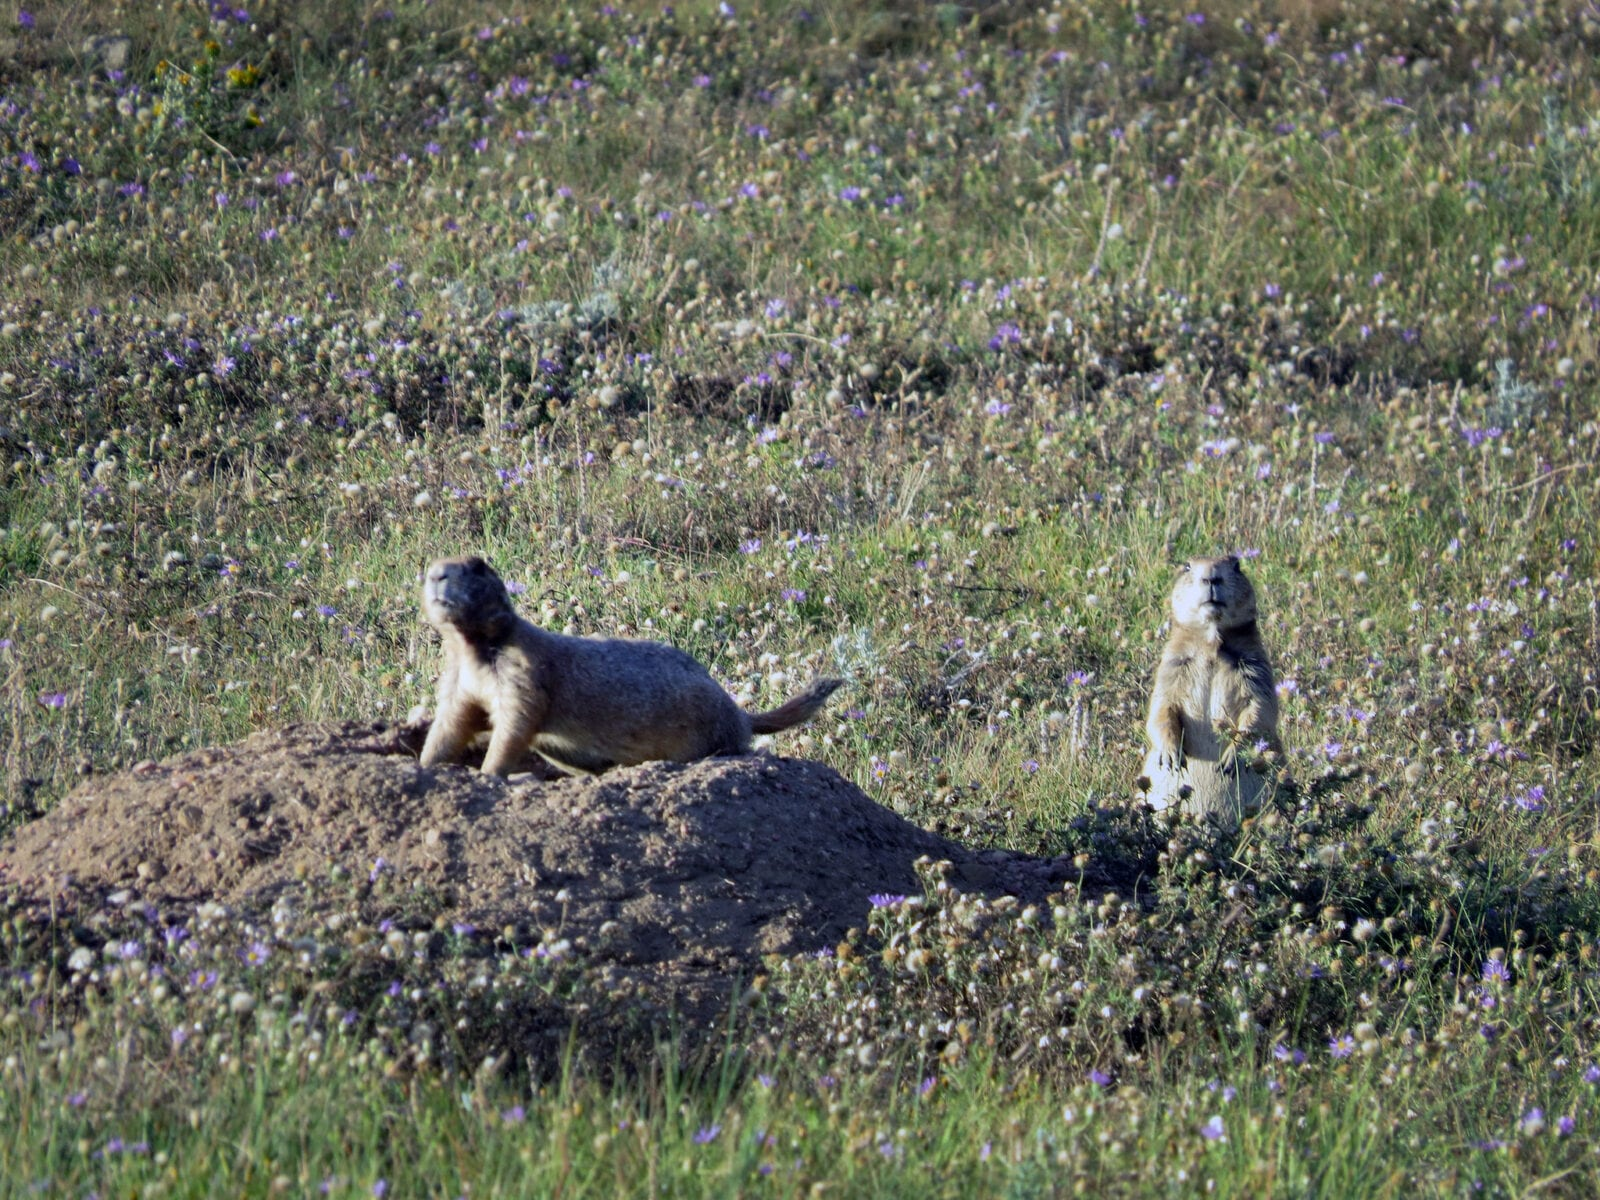 Image of prairie dogs at Soapstone Prairie Natural Area in Fort Collings, Colorado